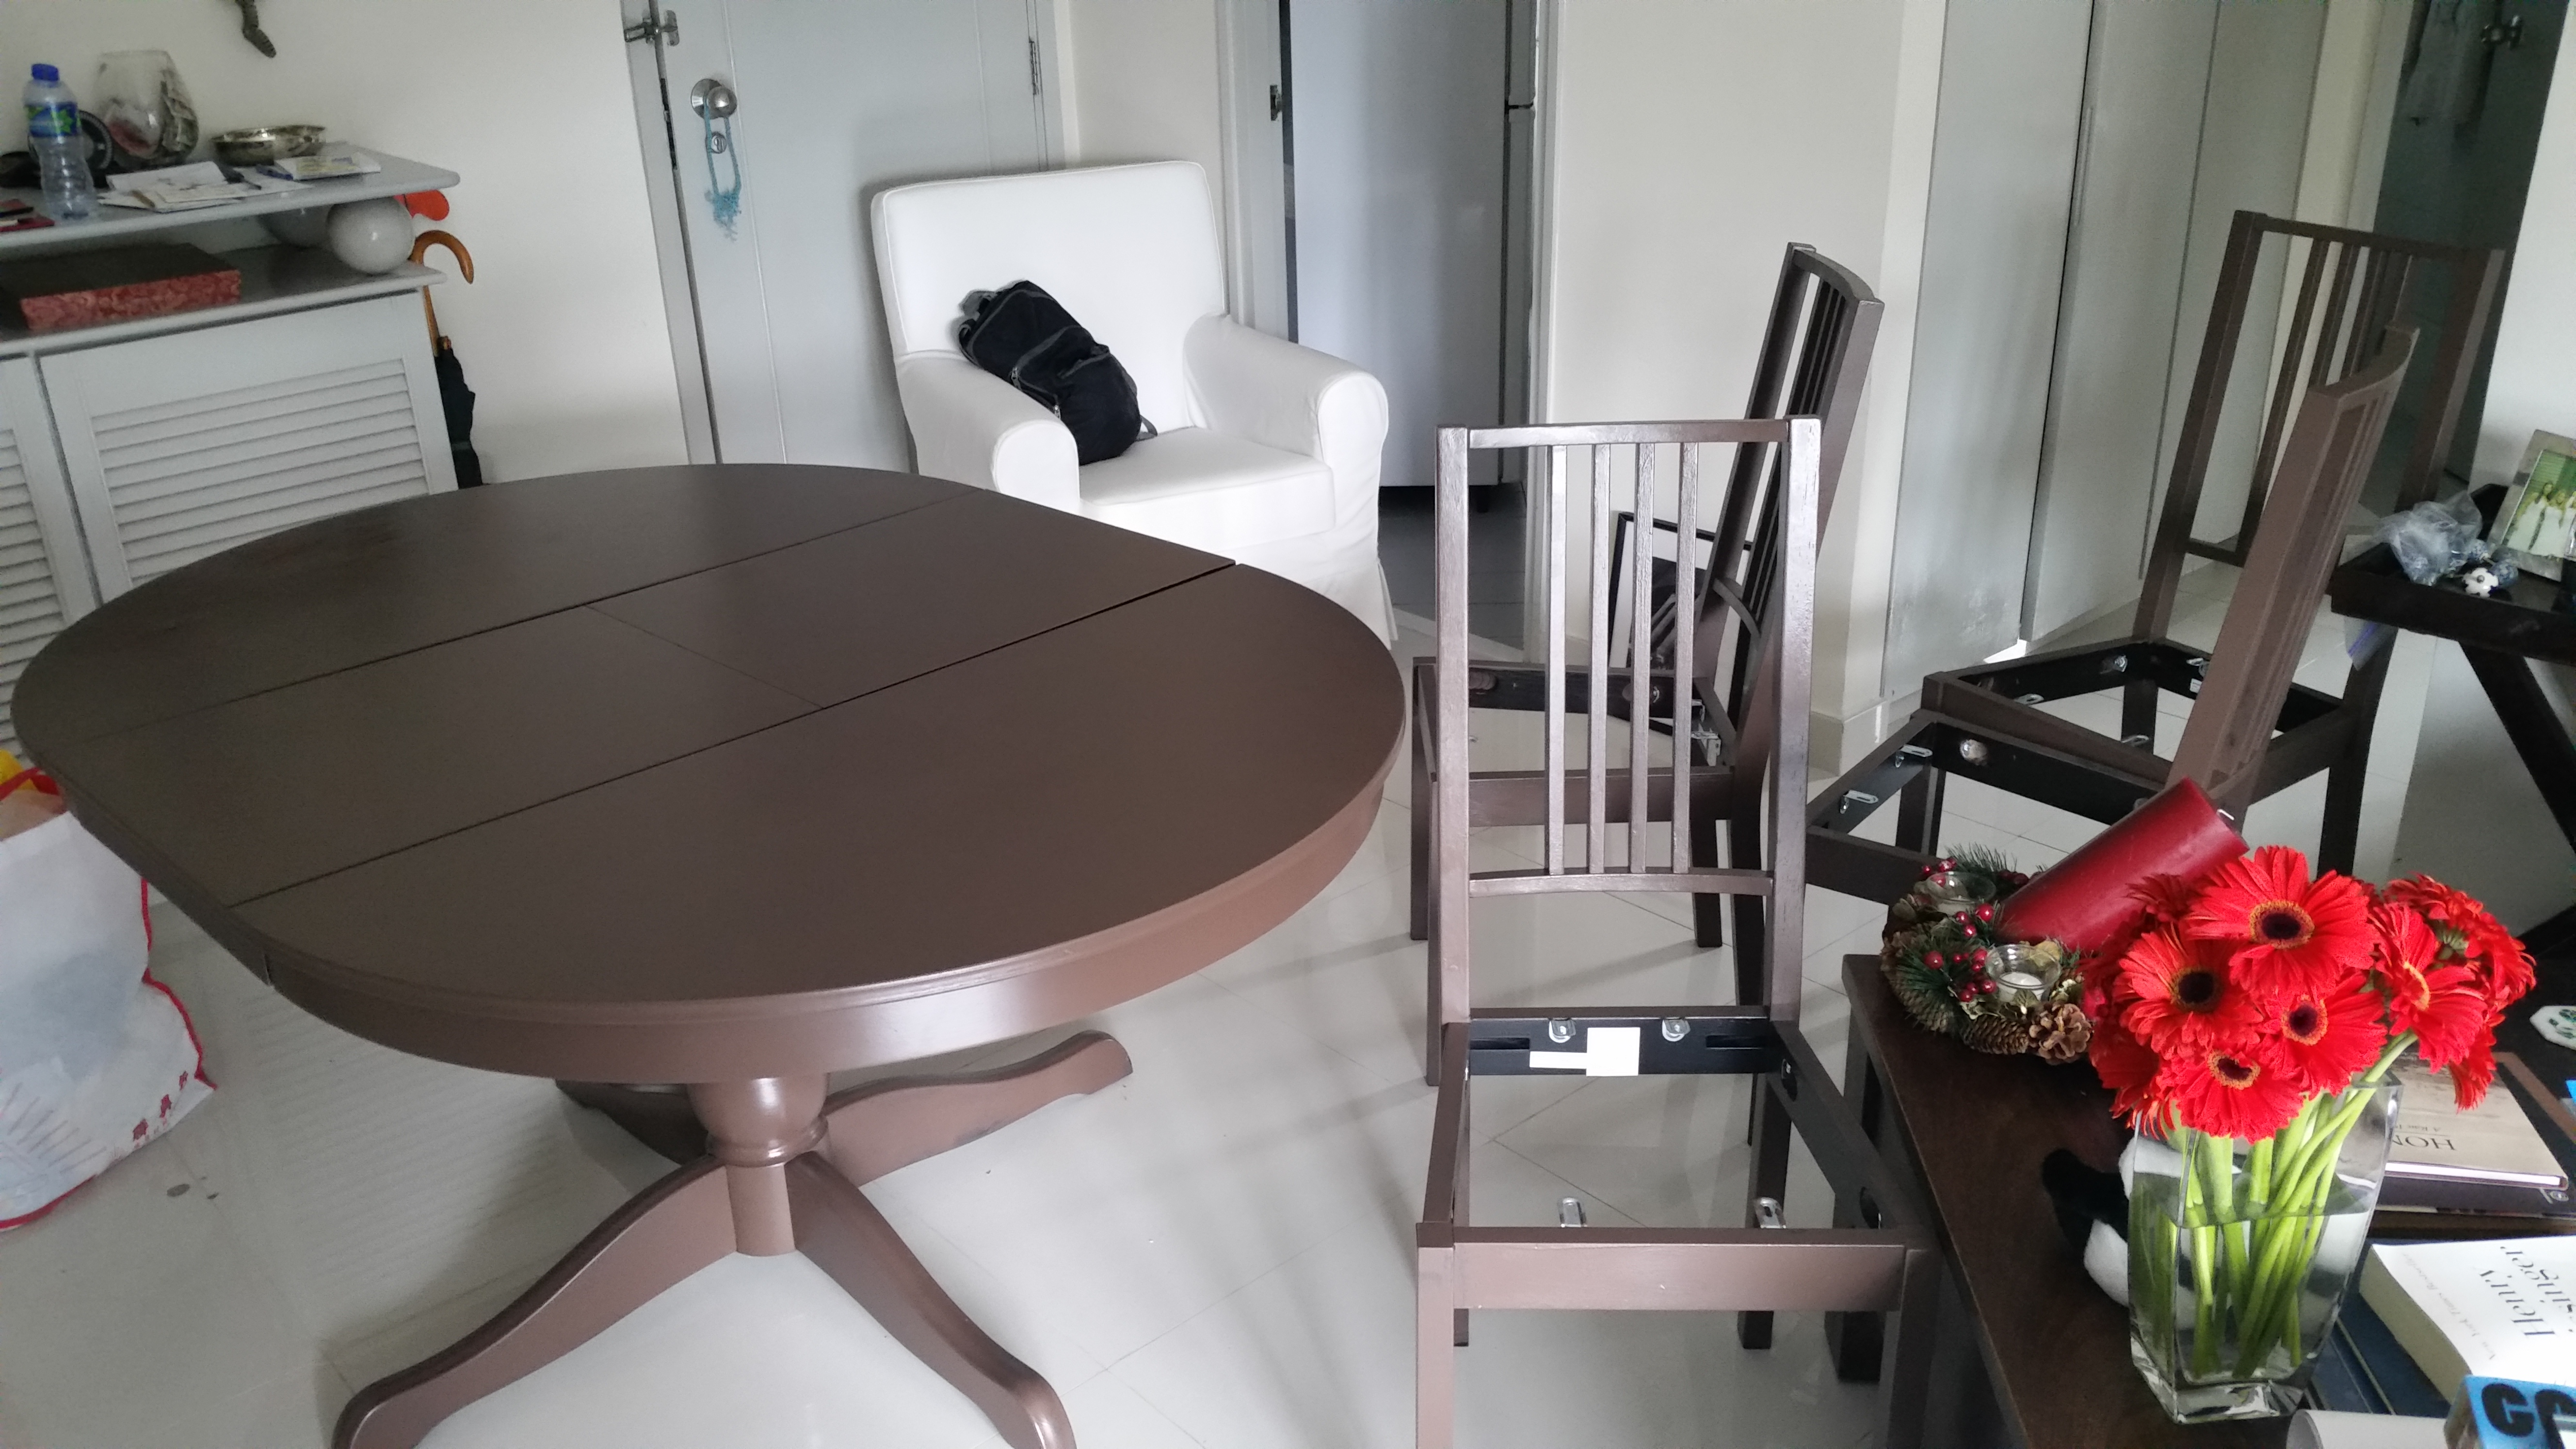 Ikea table refinished to look like wood, Conduit Road